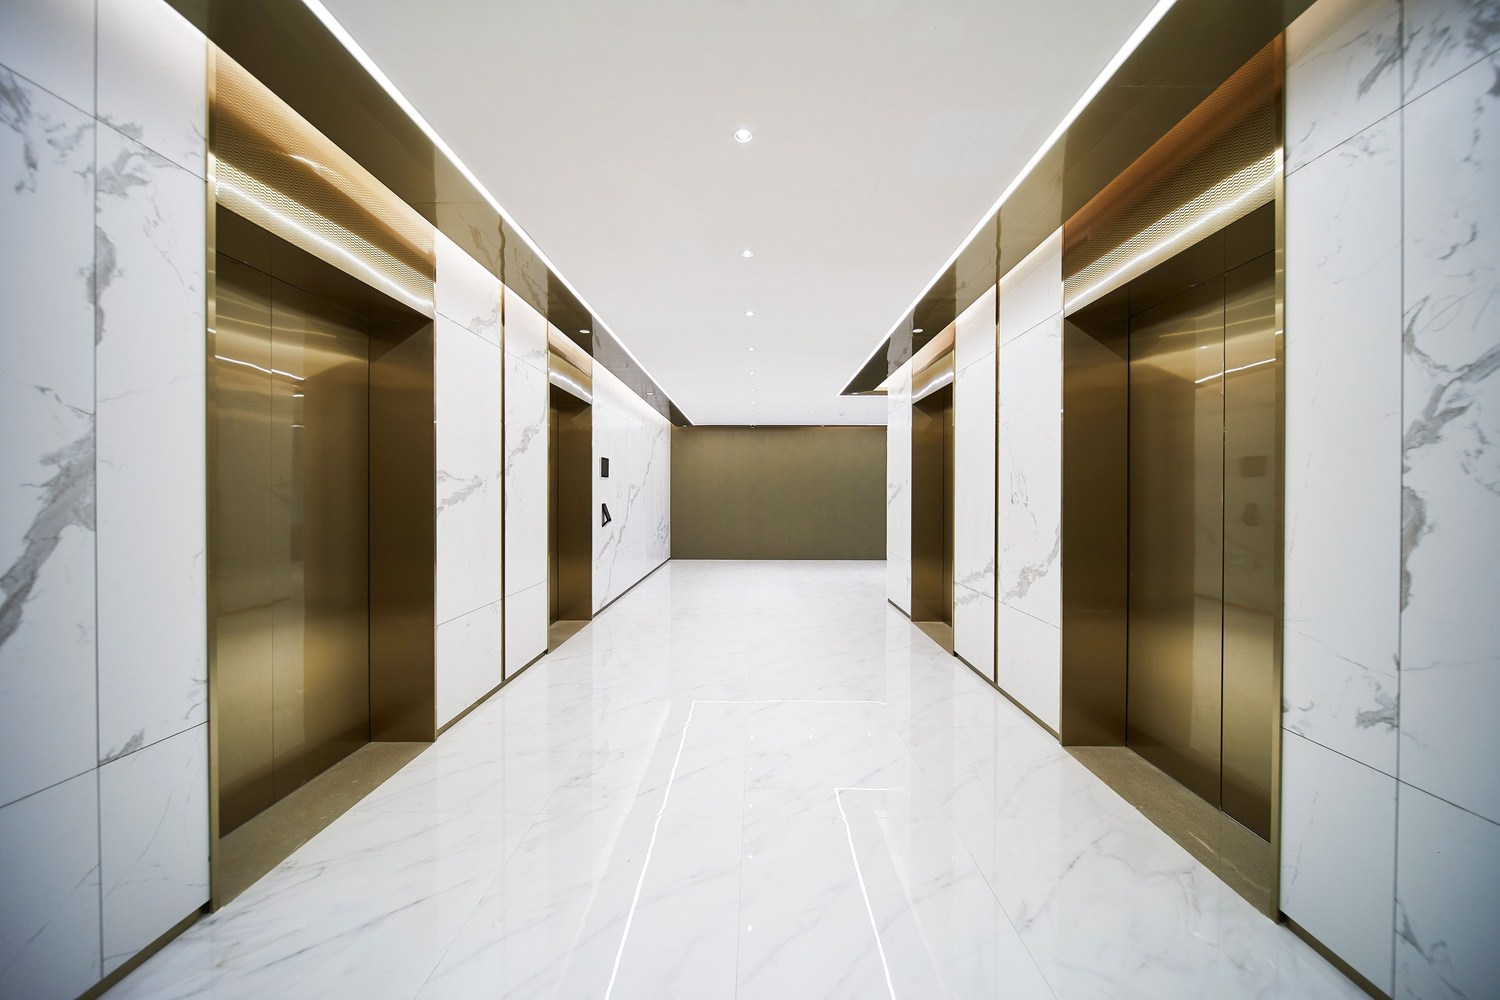 One EaThe inside of a building that has a hallway with elevators on either side of it and tile floors.st – Tower C